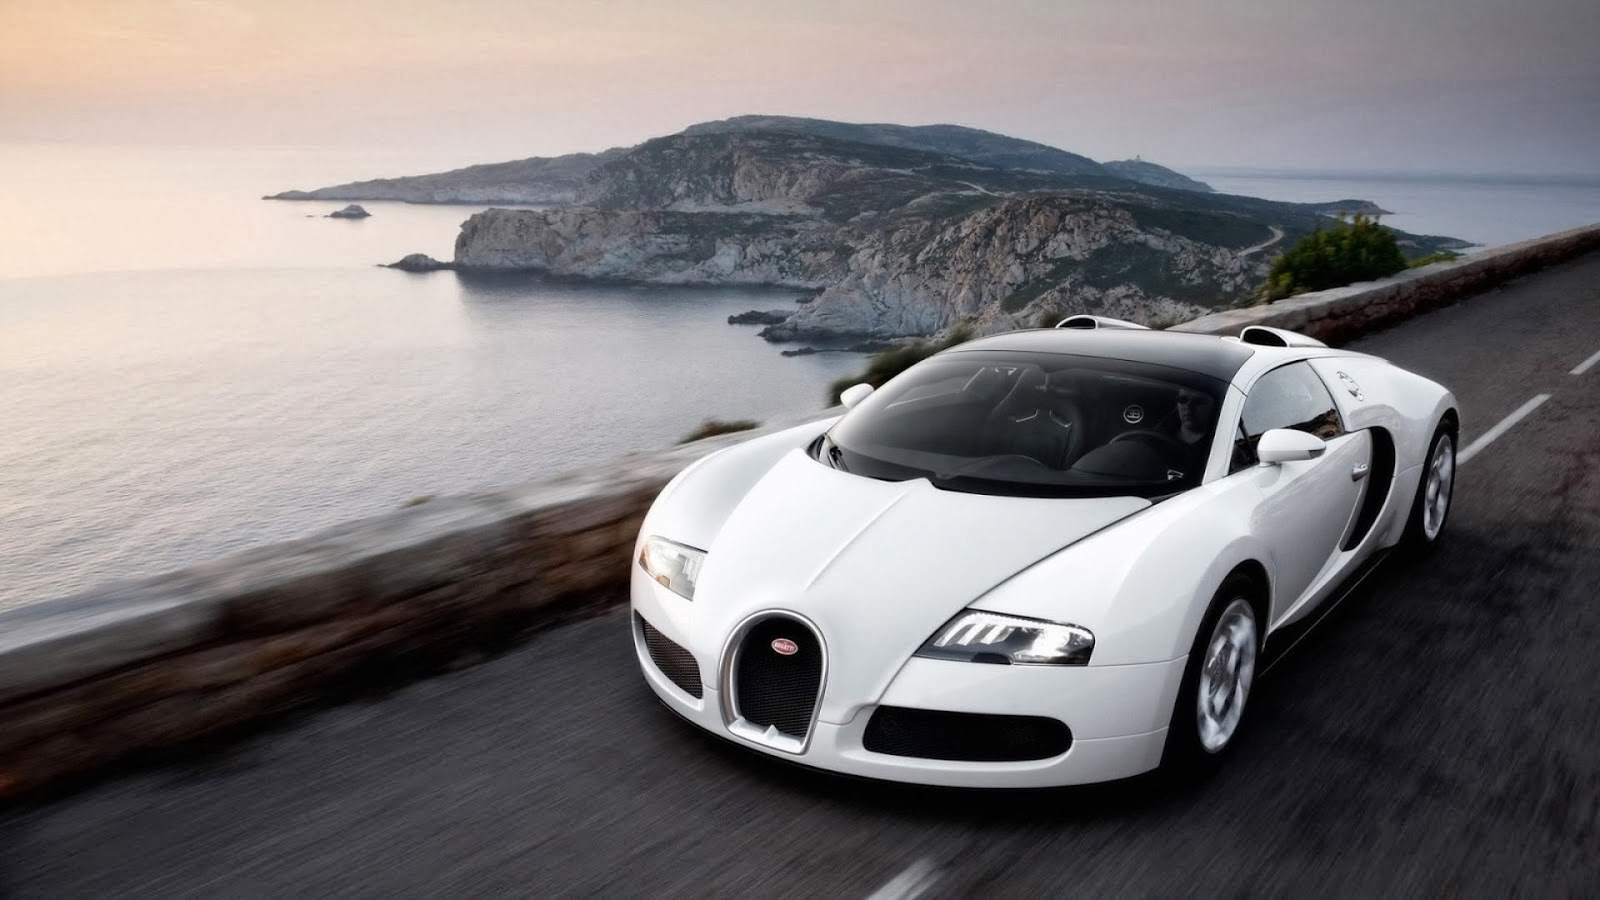 Sport Cars Wallpaper Hd 1080p: All Hot Informations: Download Bugatti Veyron Sports Cars